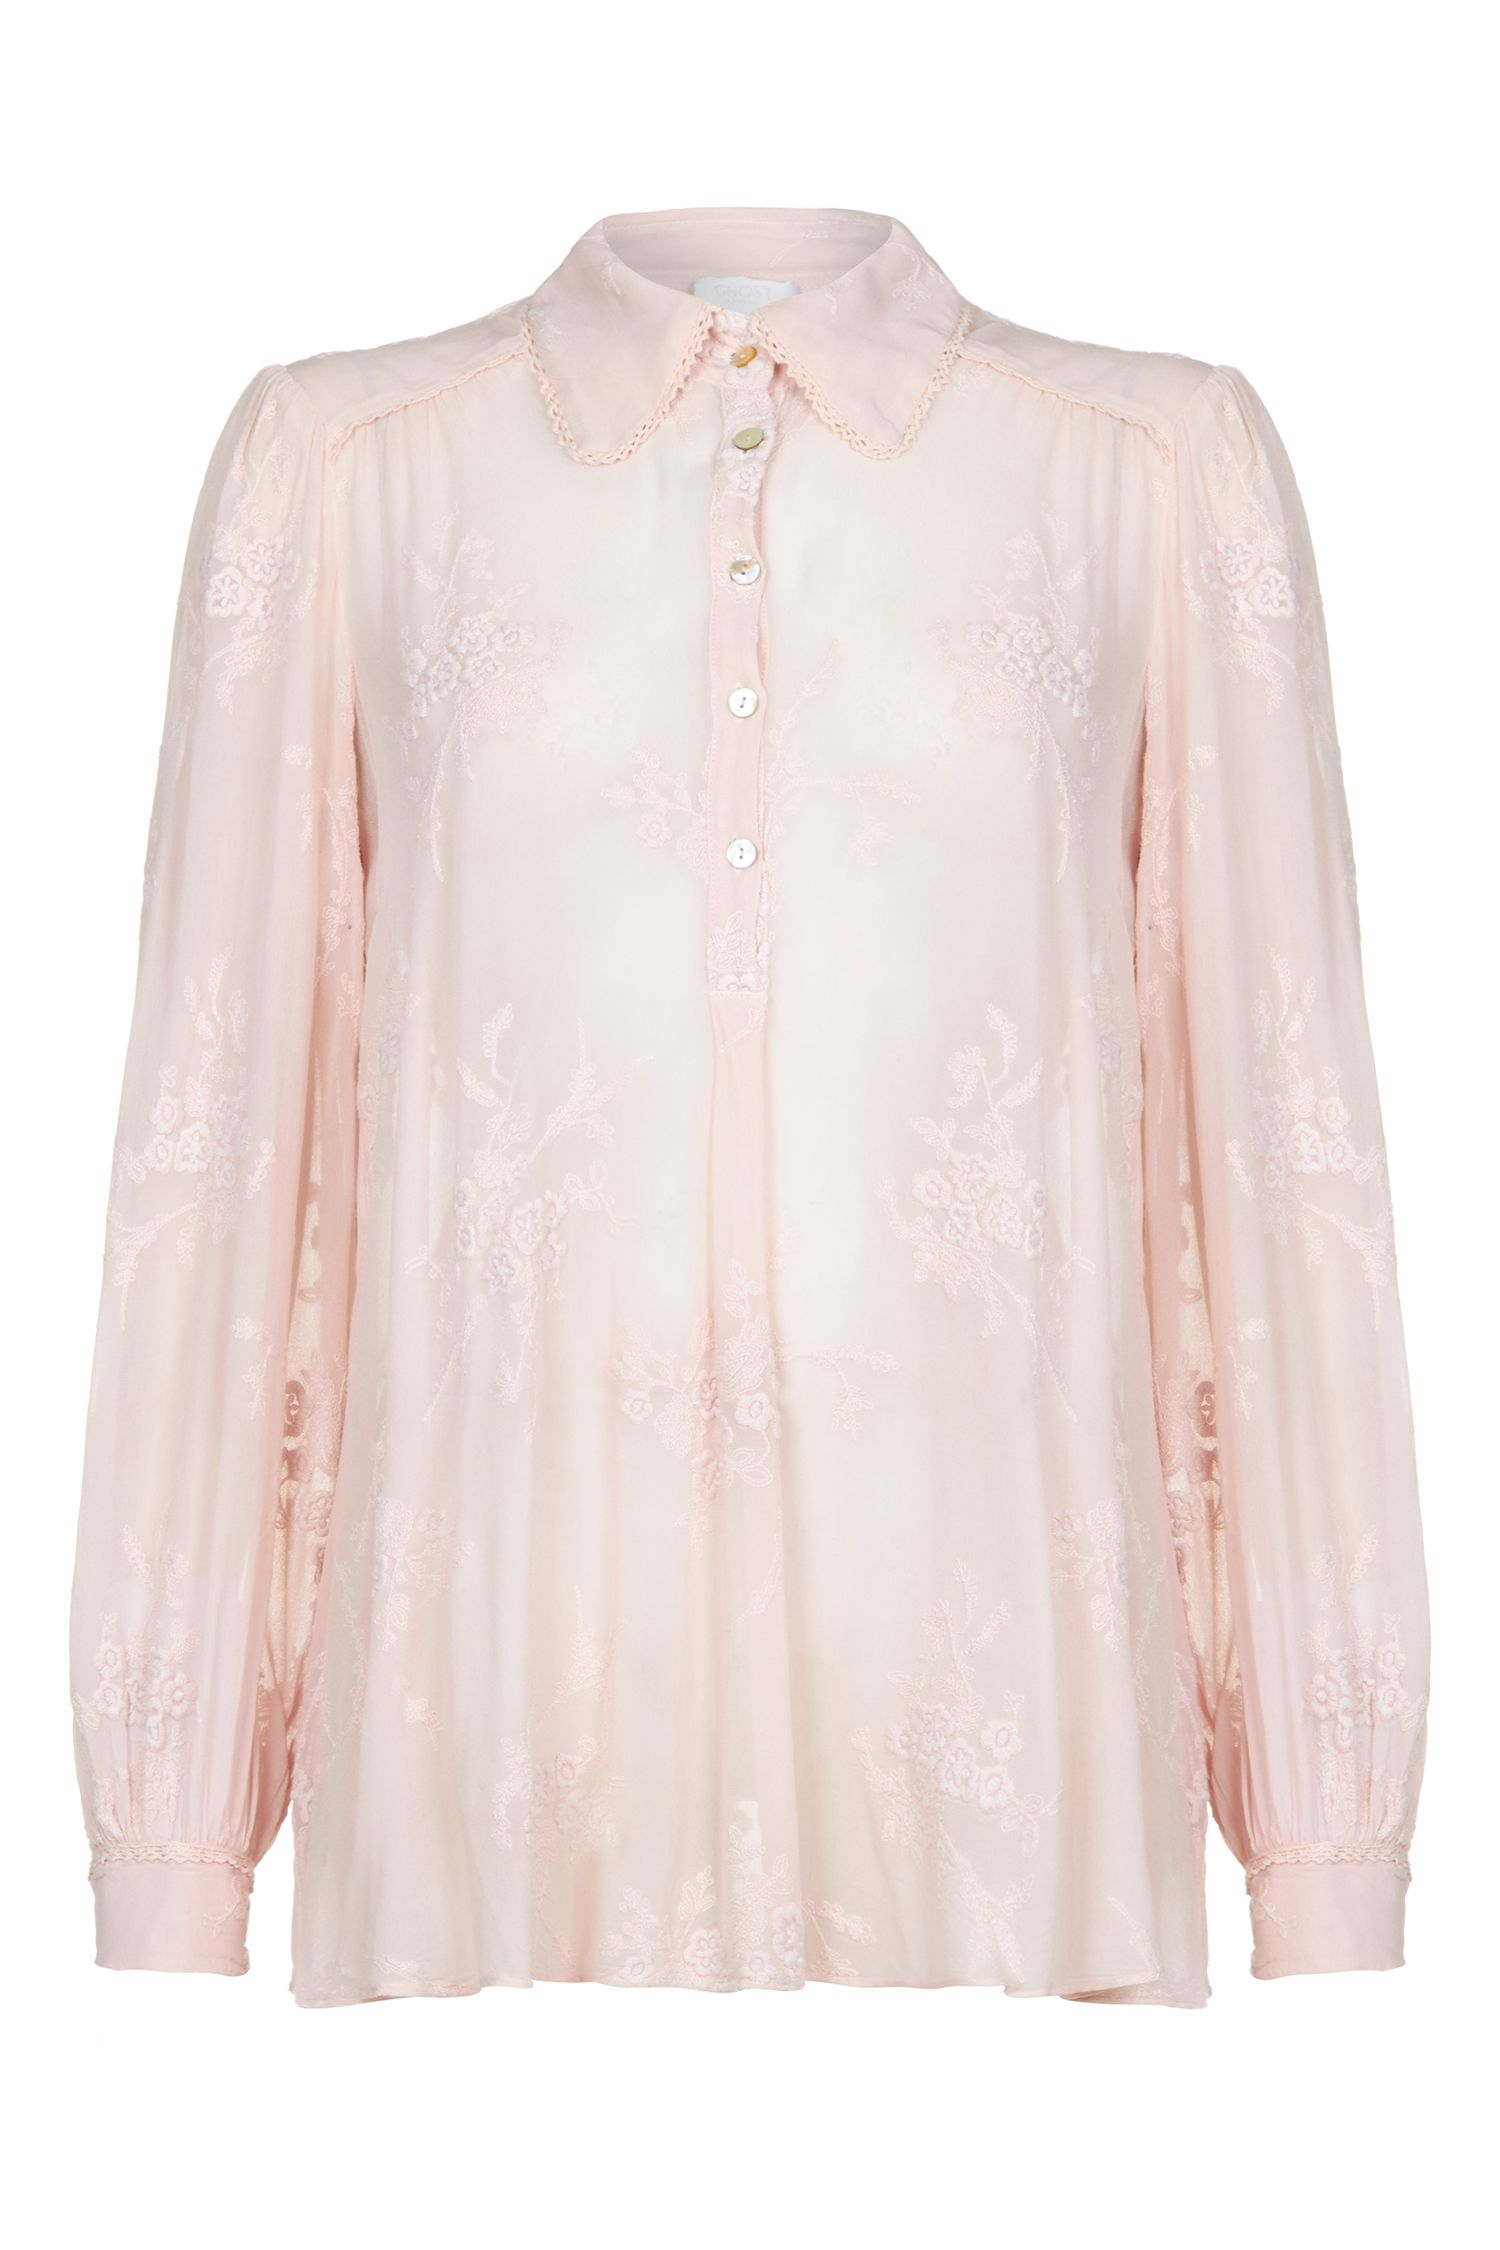 Ghost Clara Blouse Nude Nude £145.00 AT vintagedancer.com